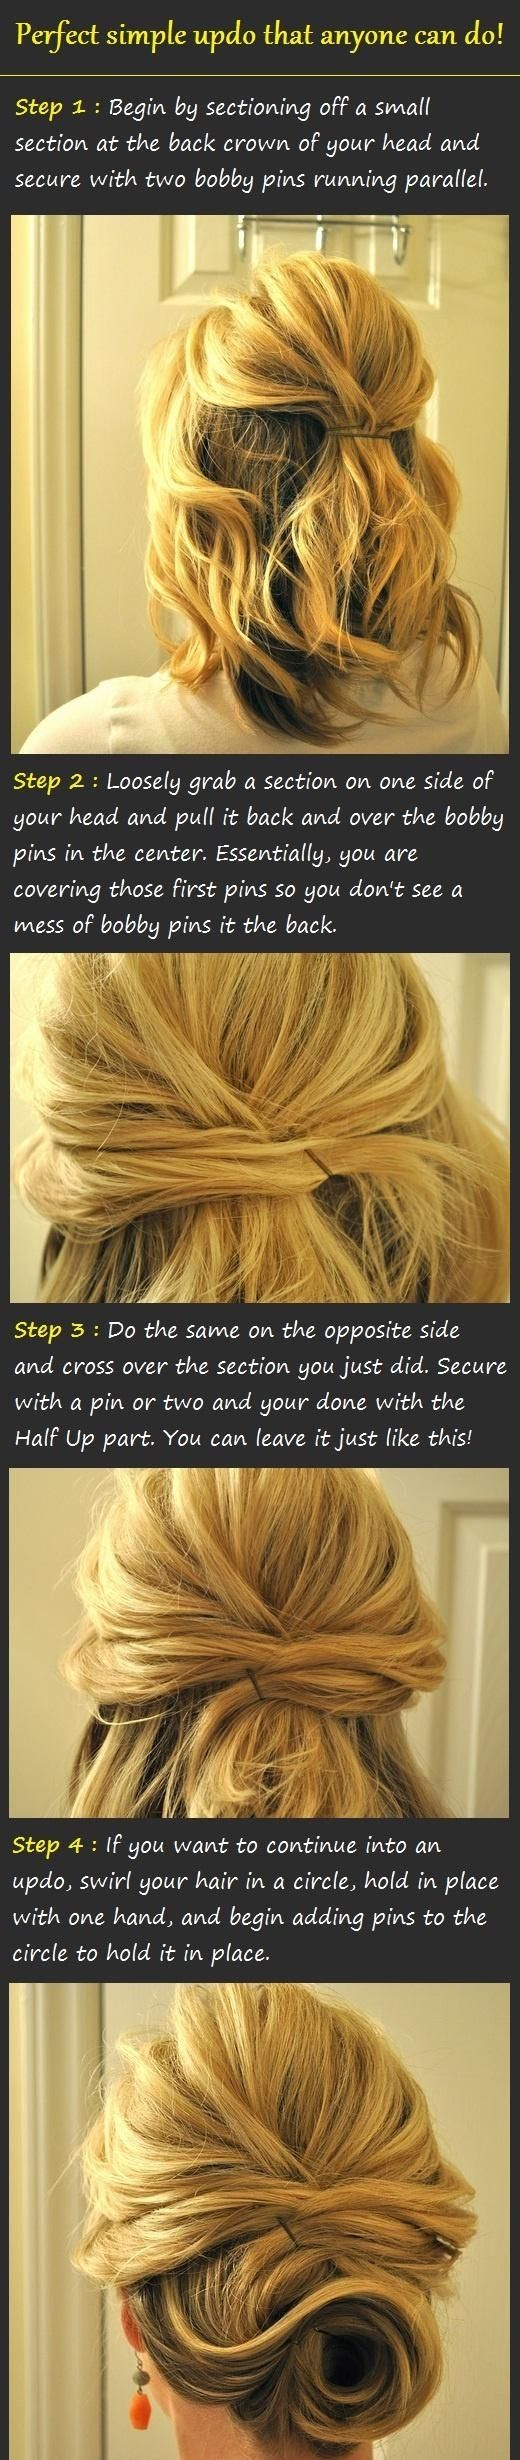 Updo for shoulder length hair?